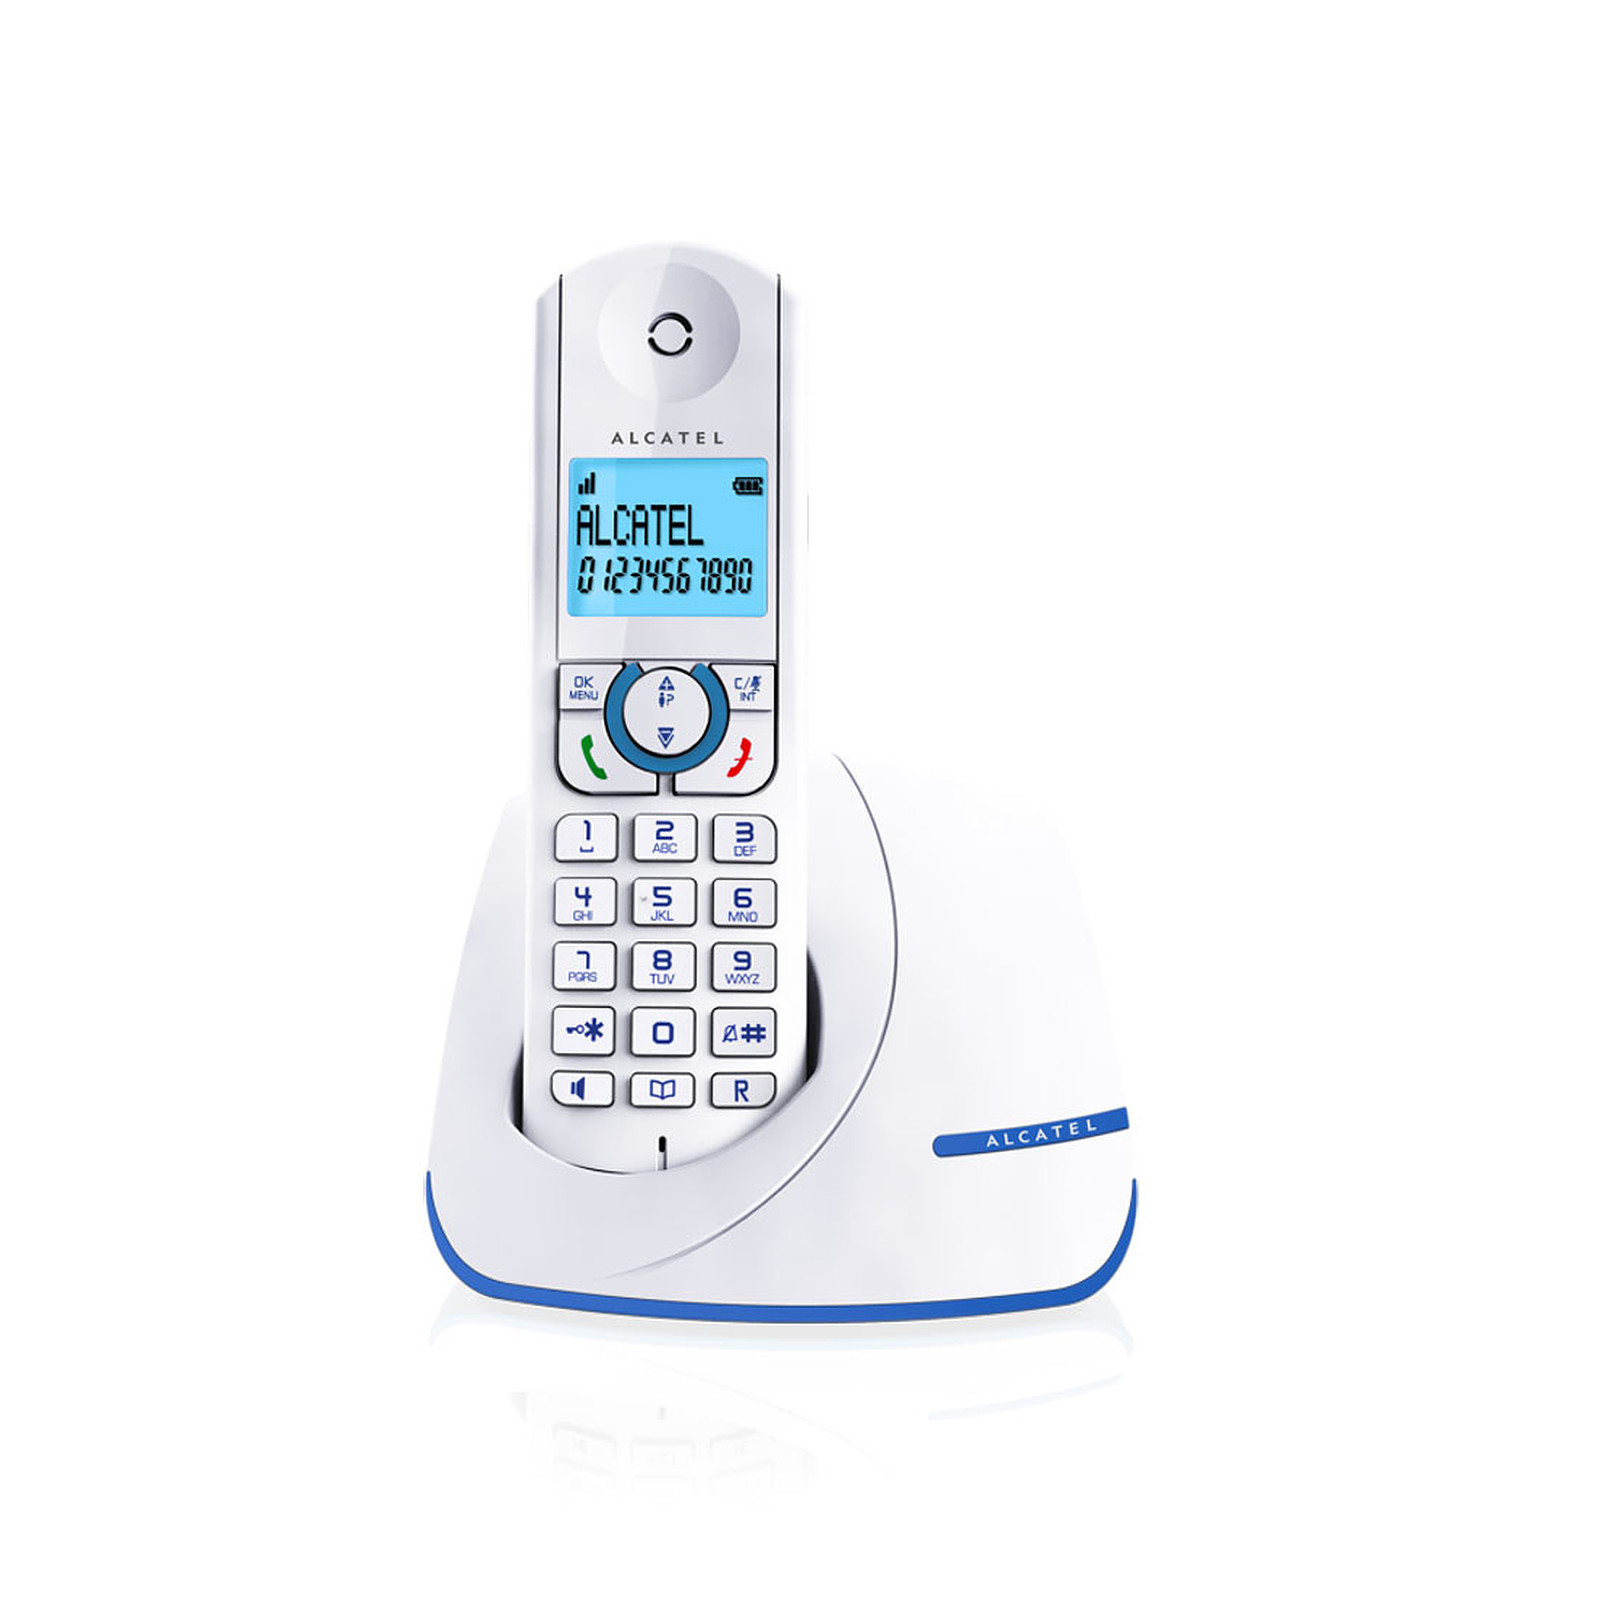 Alcatel F390 Bleu